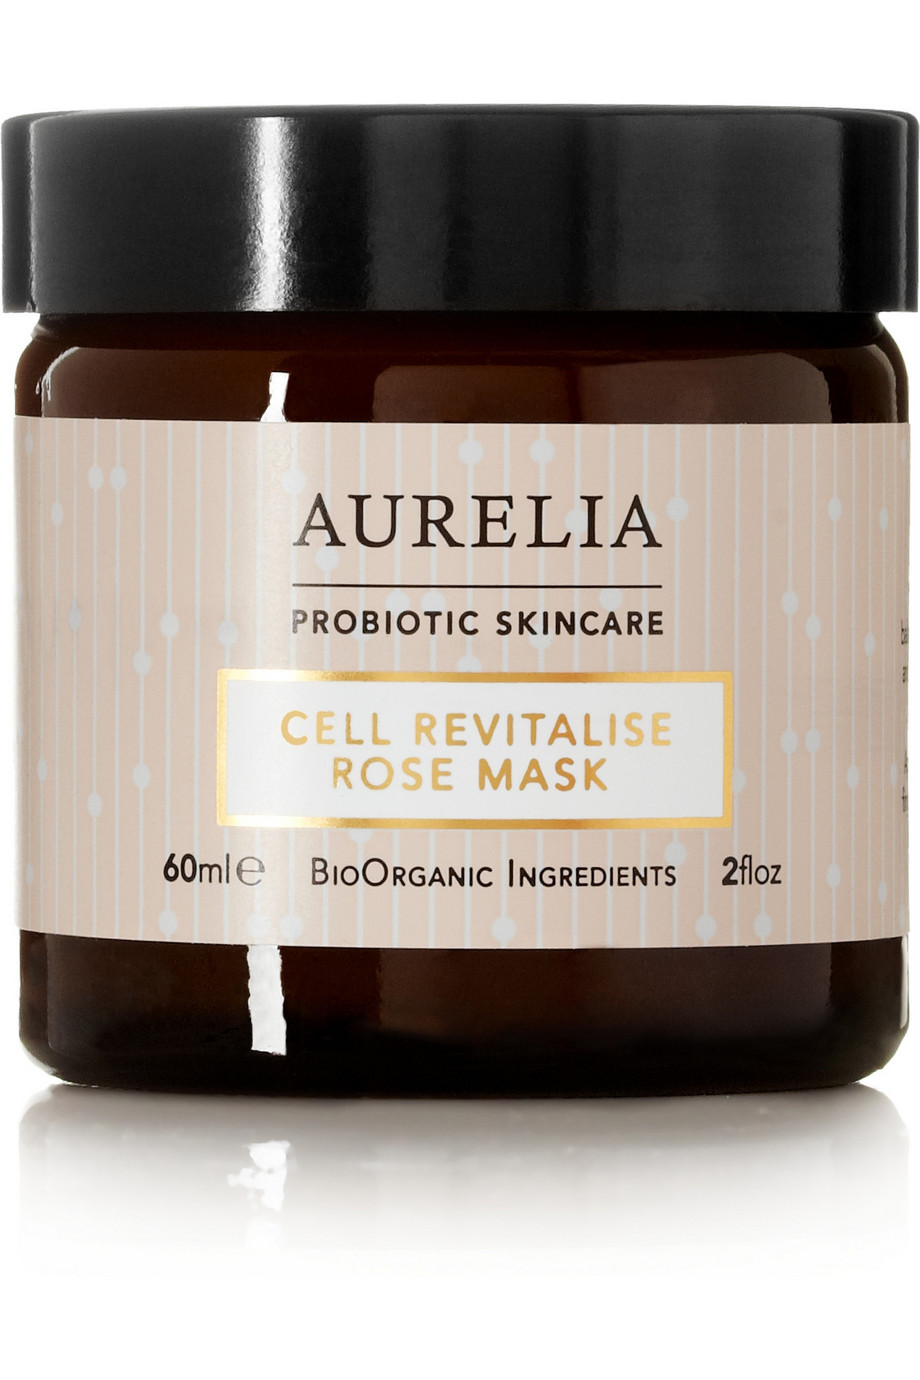 Cell Revitalise Rose Mask, 60ml, by Aurelia Probiotic Skincare